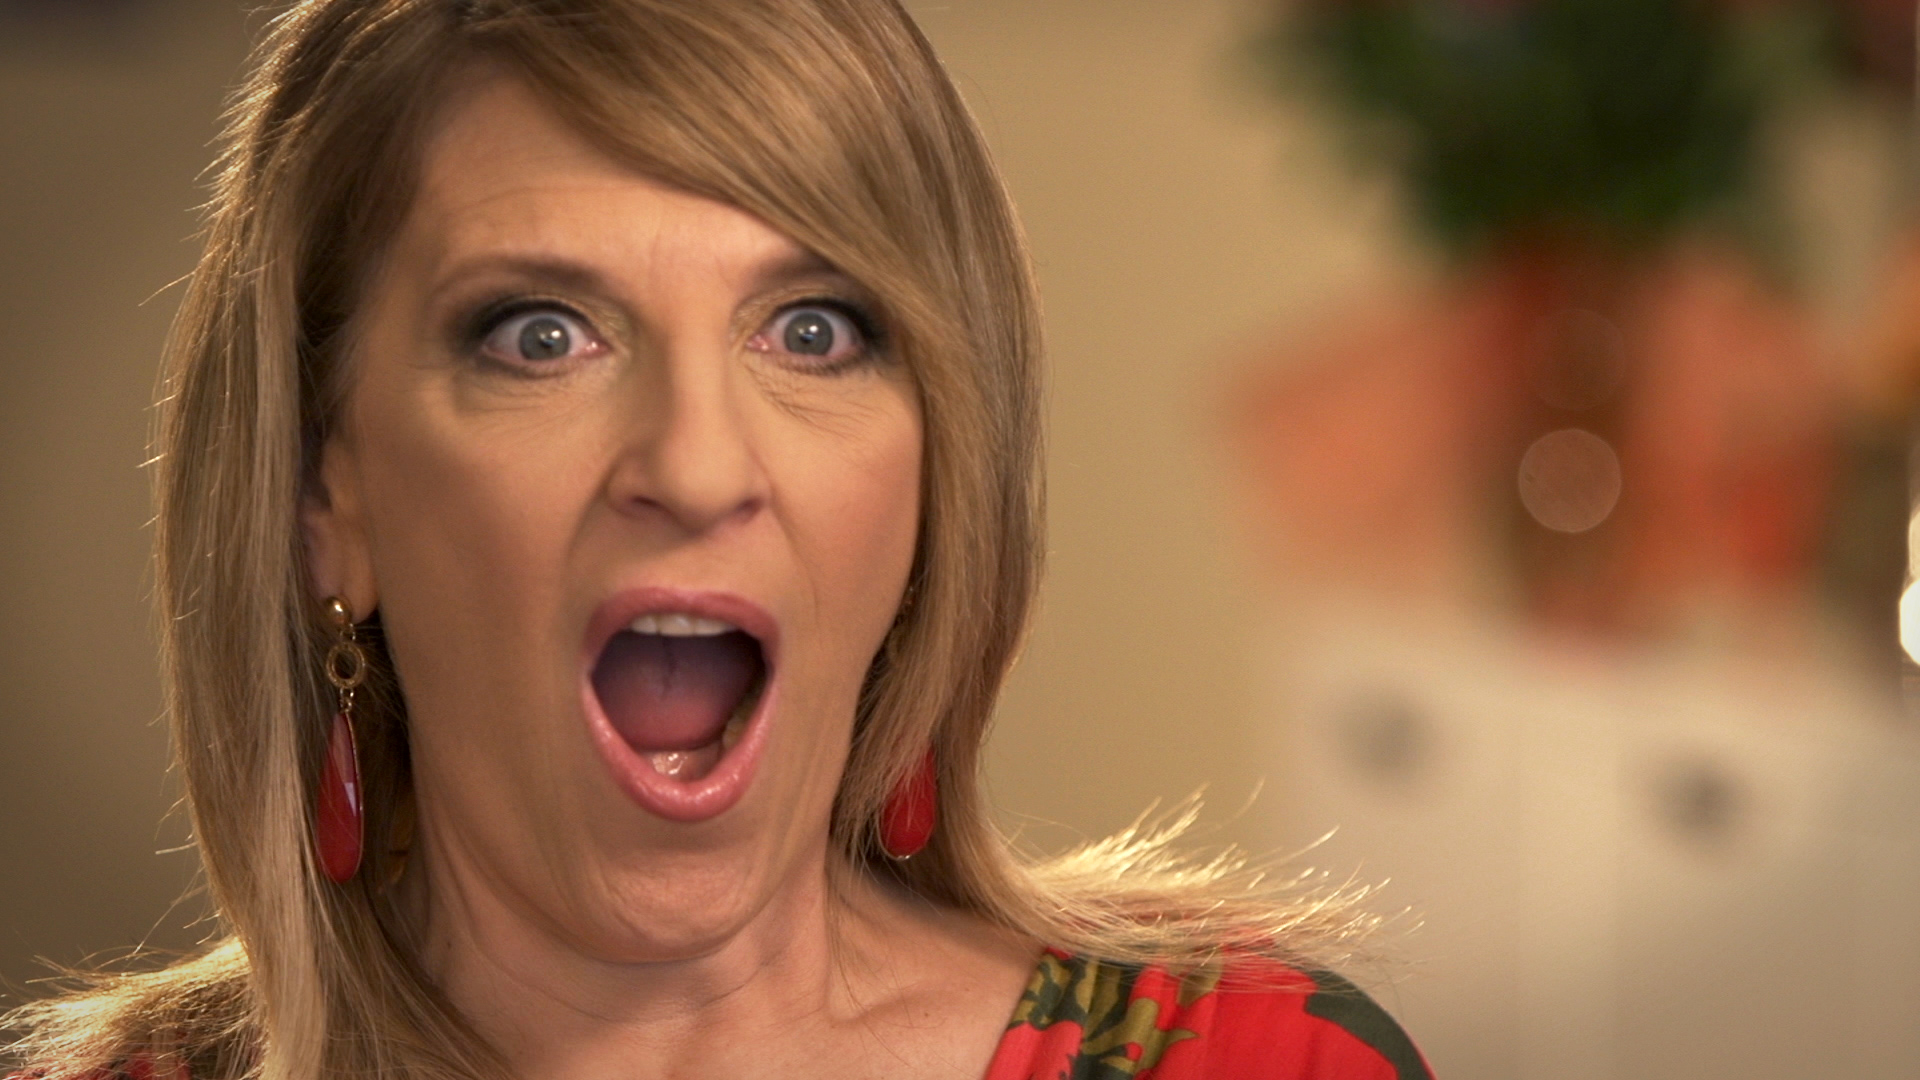 Lisa Lampinelli reacts to finding Christmas displays up in March at Wal-Mart.